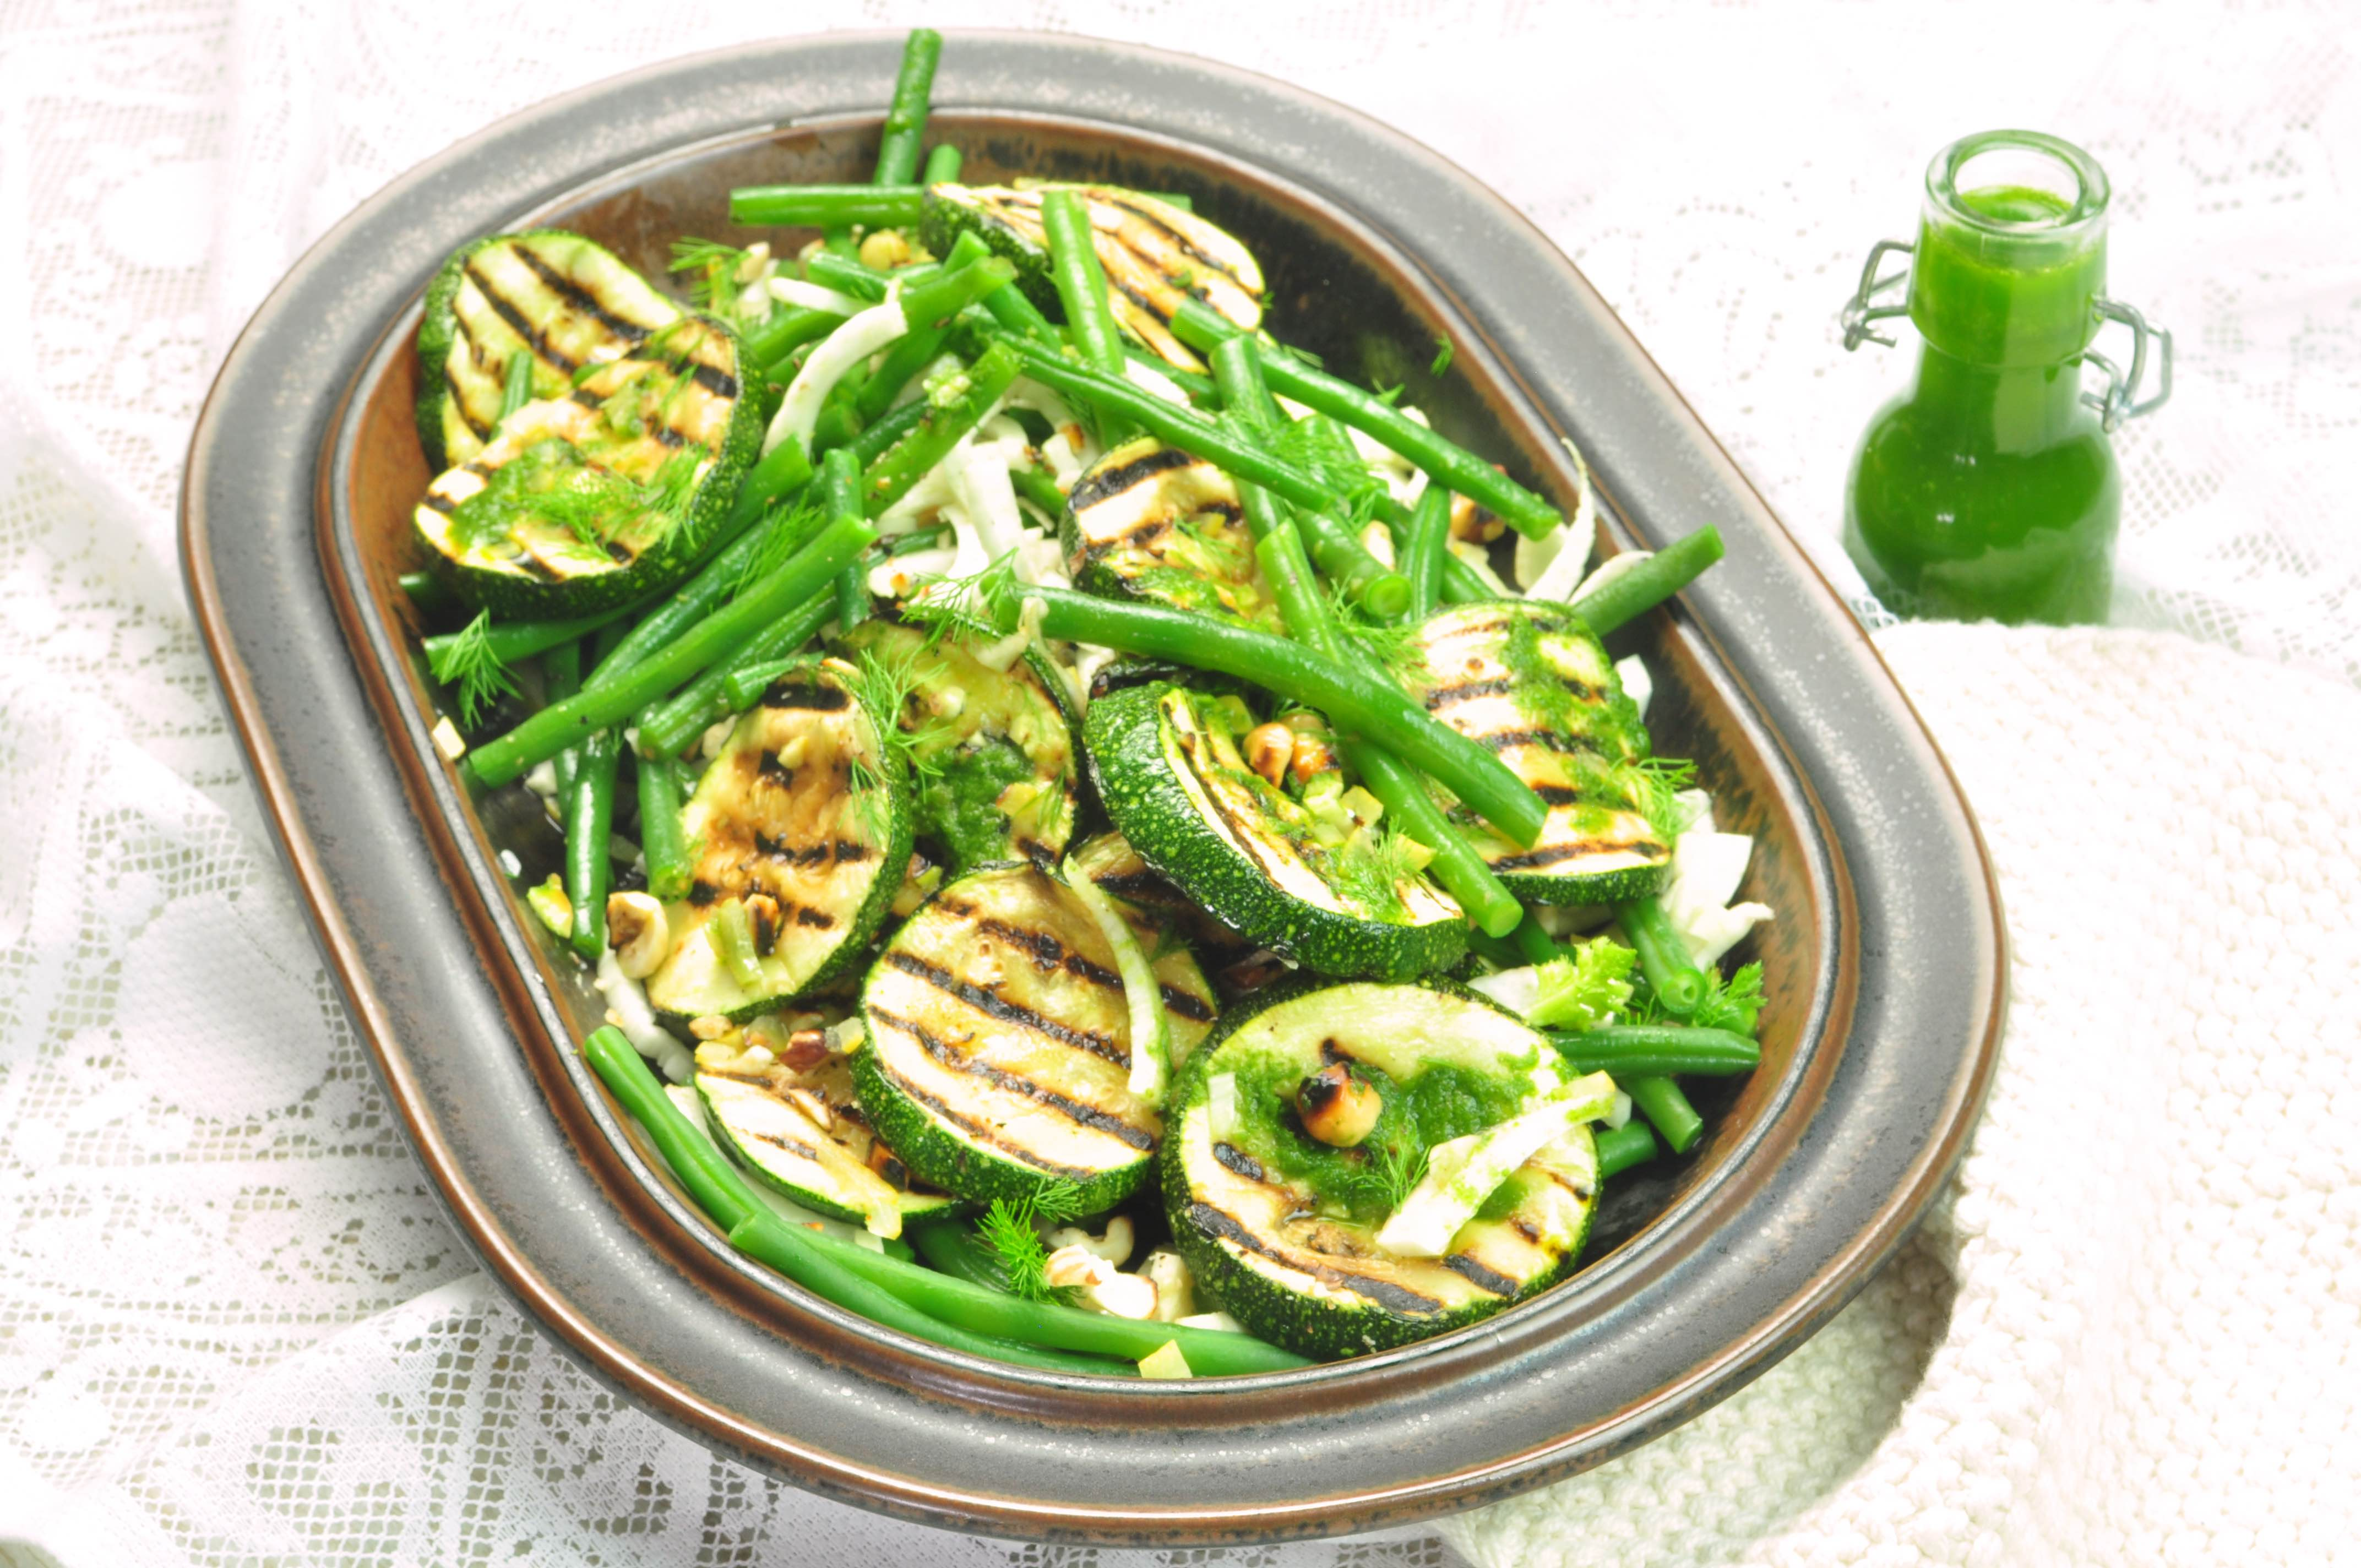 Greens_with_even_more_green_dressing